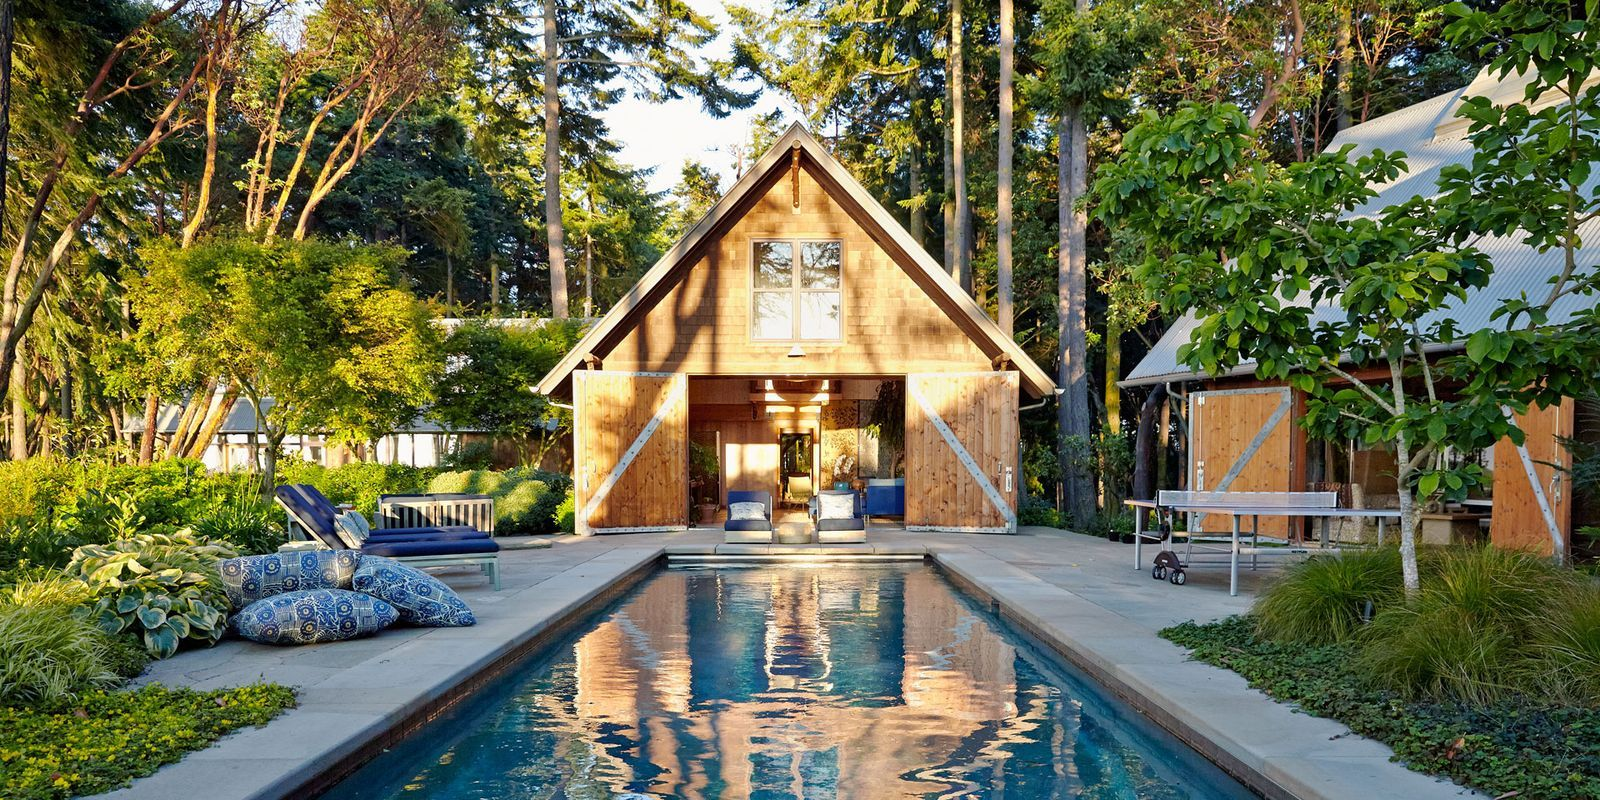 ... An All Natural Swimming Pond, These Designer Pools Make A Splash. Steal  Our Favorite Patio And Landscaping Ideas Too For The Ultimate Backyard  Getaway.